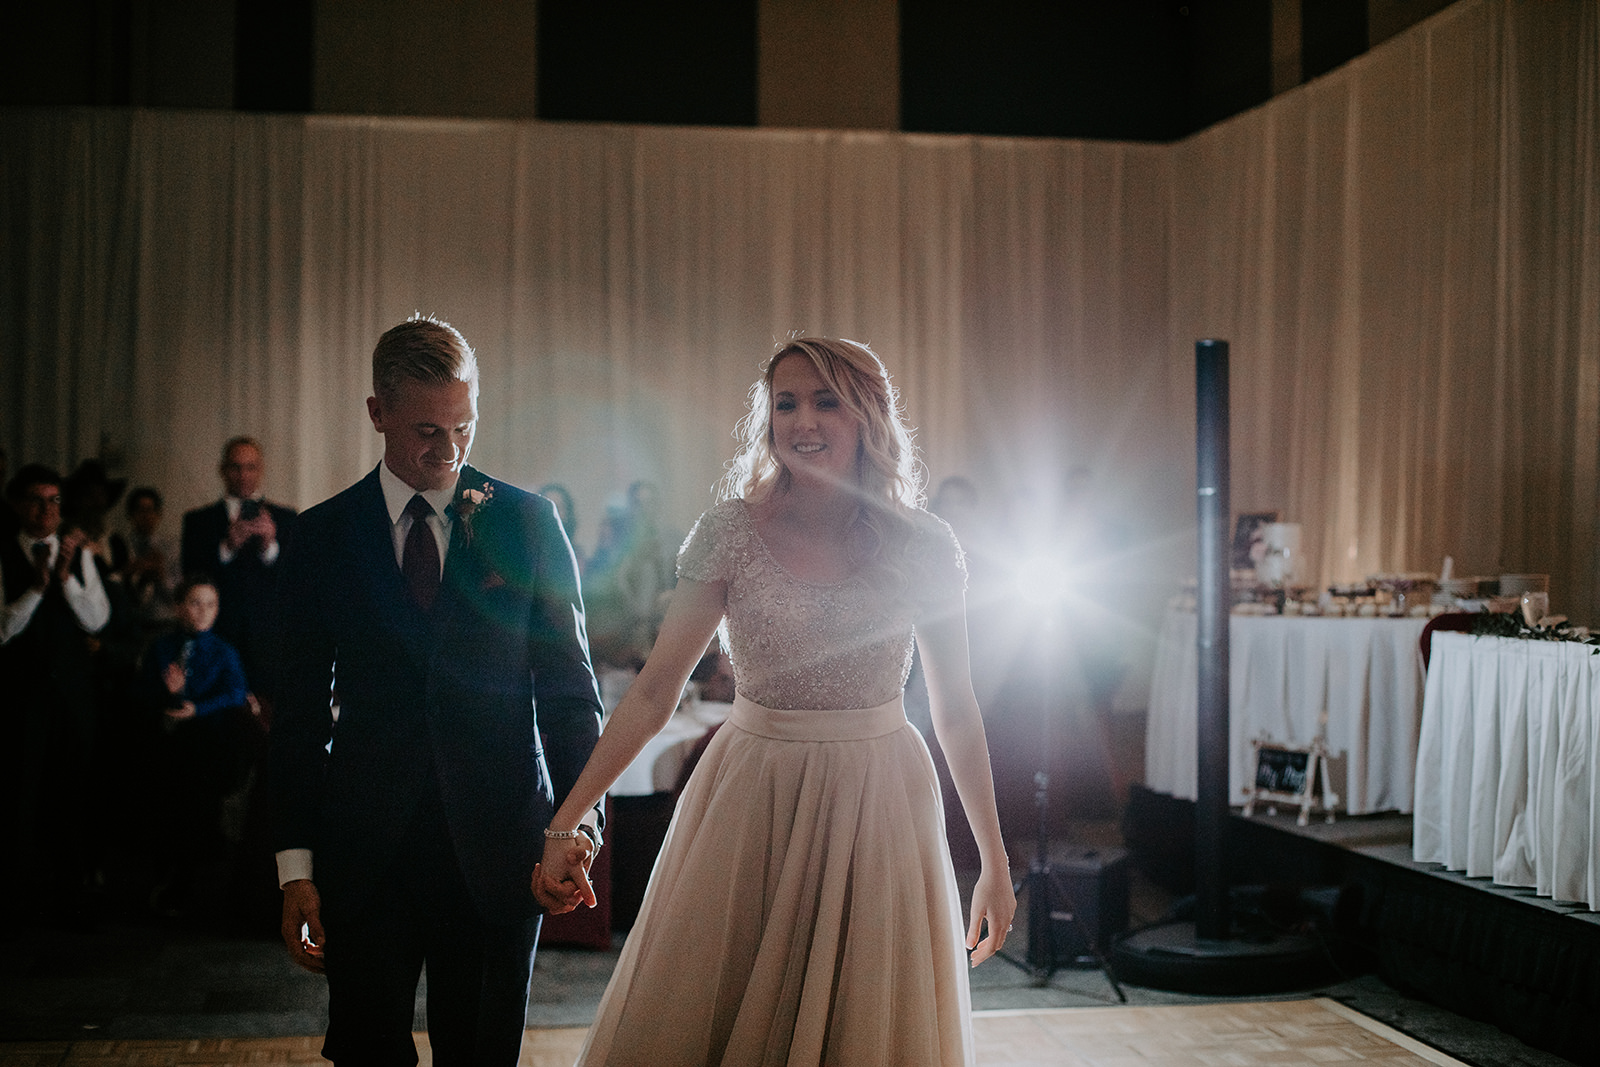 Couple holding hands after completing their first dance as a married couple